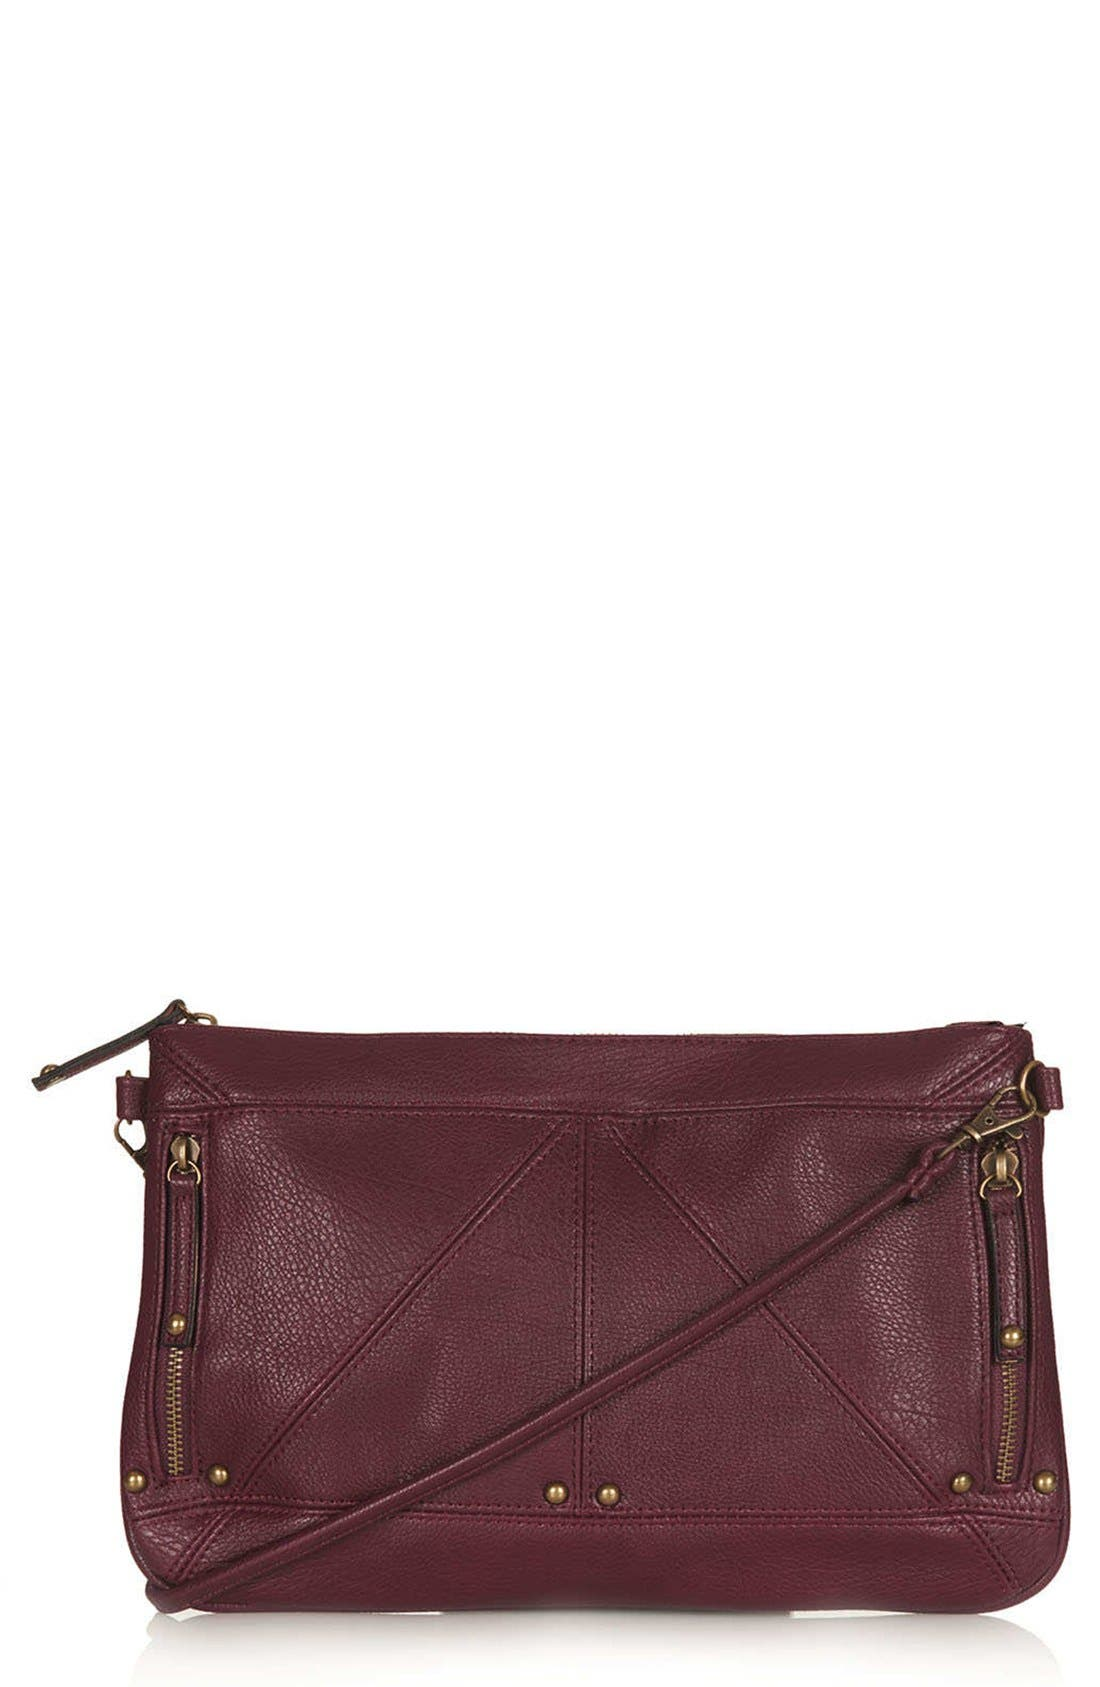 Alternate Image 1 Selected - Topshop Studded Zip Clutch